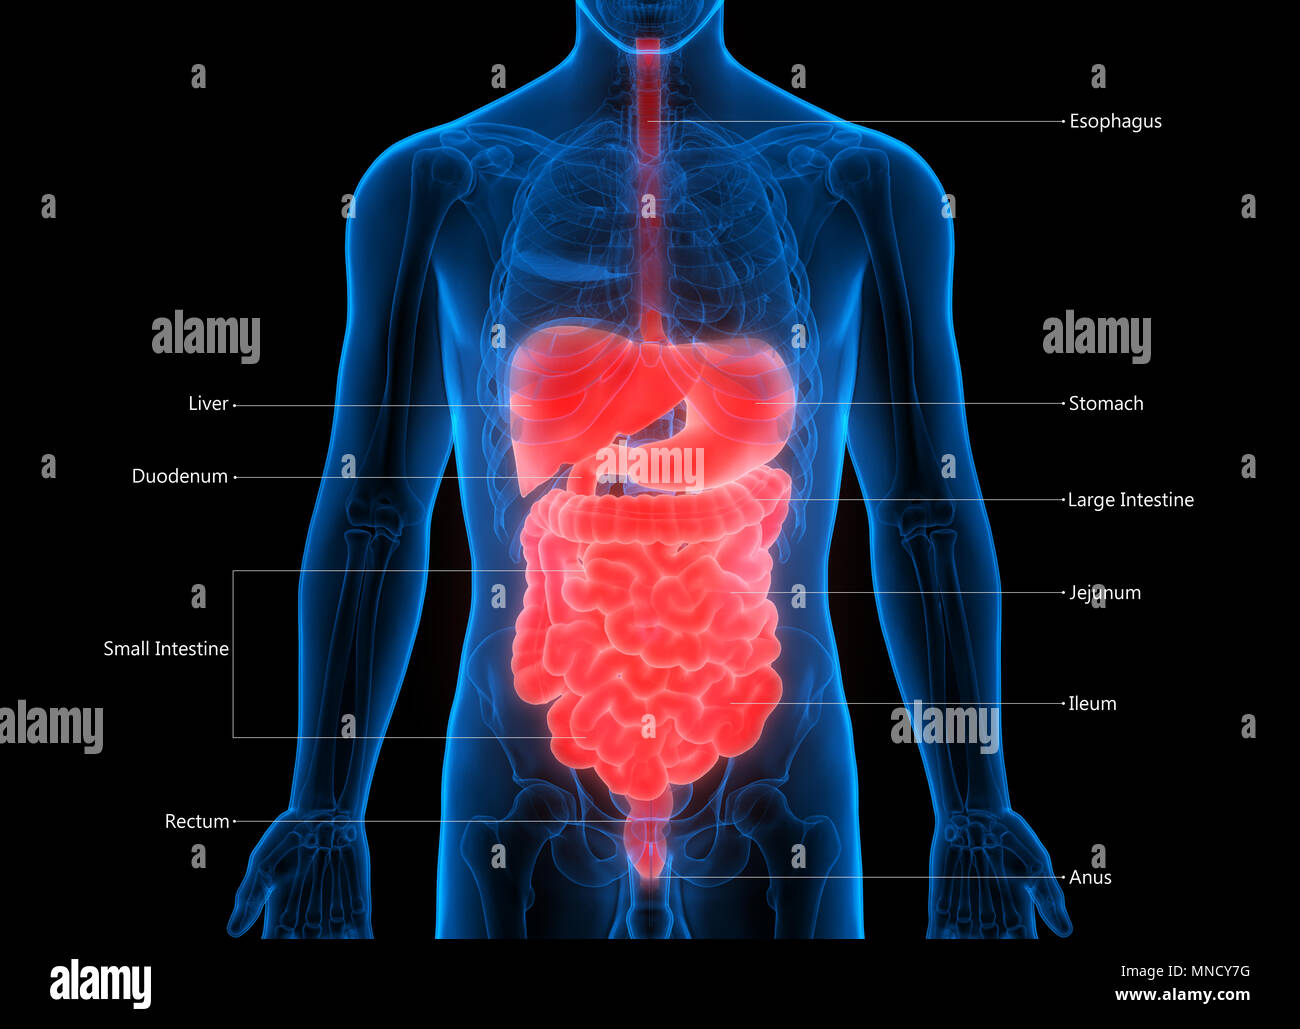 Digestive System Stock Photos & Digestive System Stock Images - Alamy